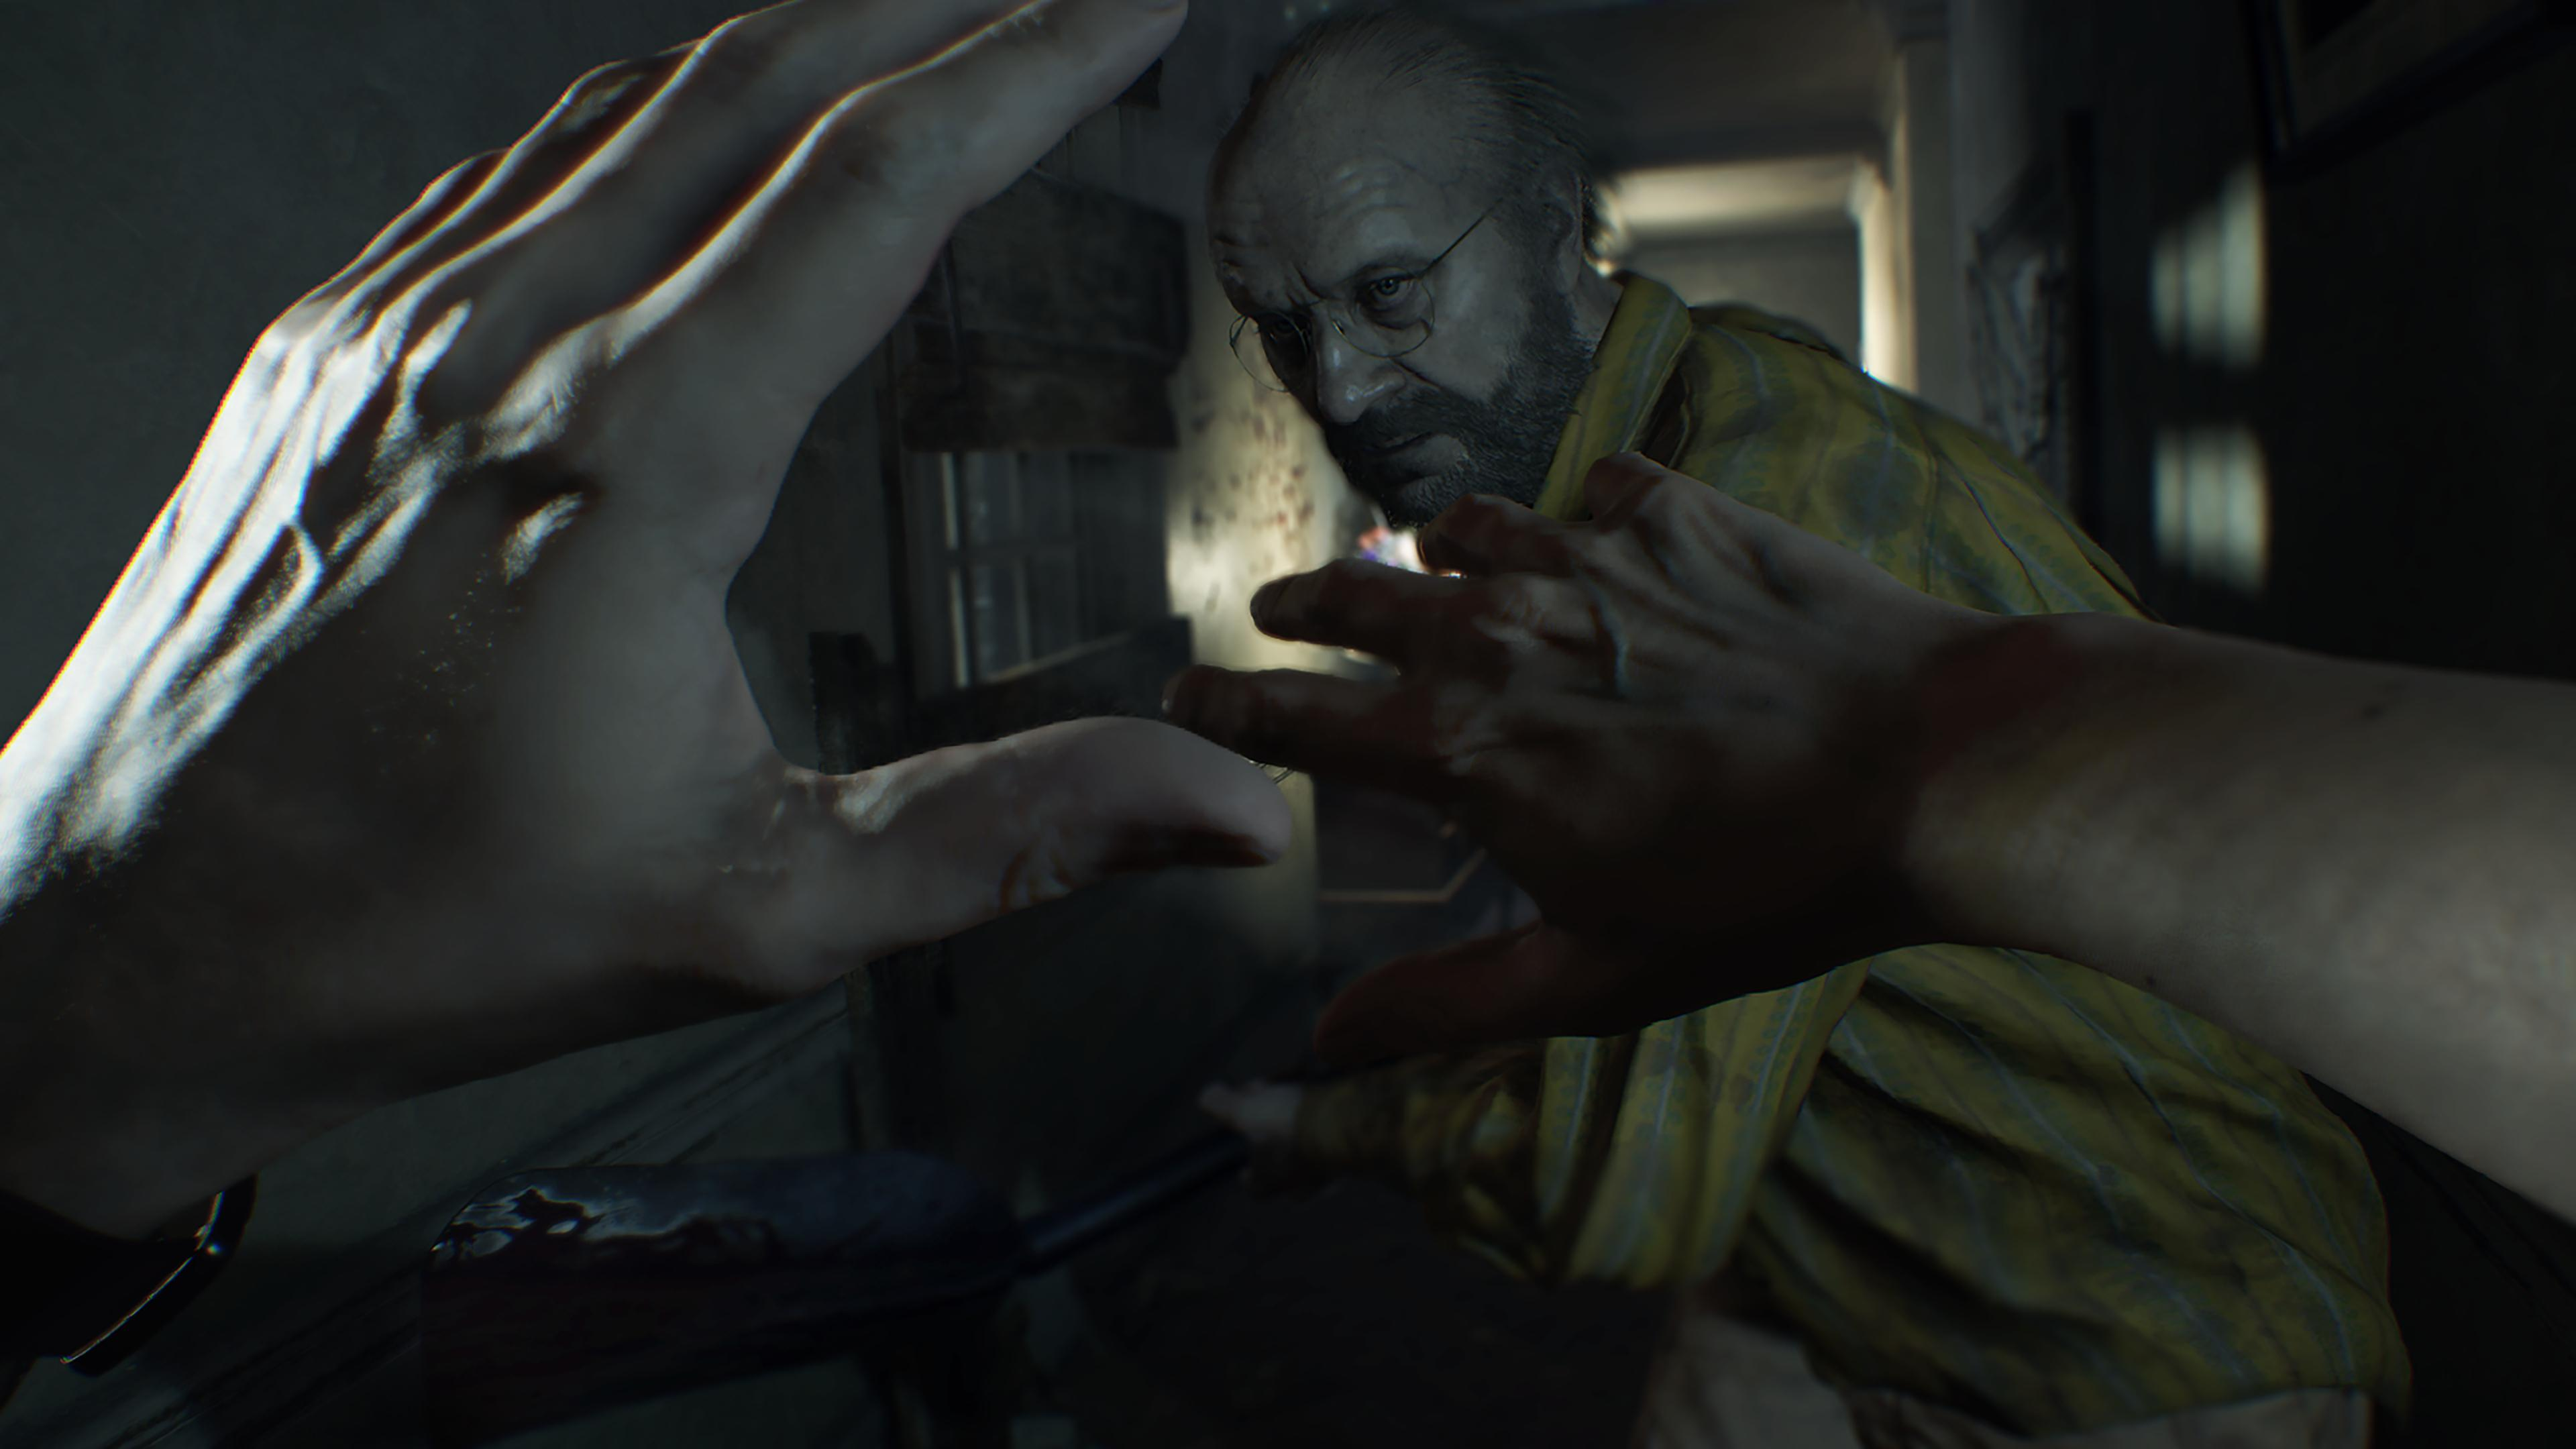 dgb Resident Evil 7 Gets Huge News And Creepy New Trailer